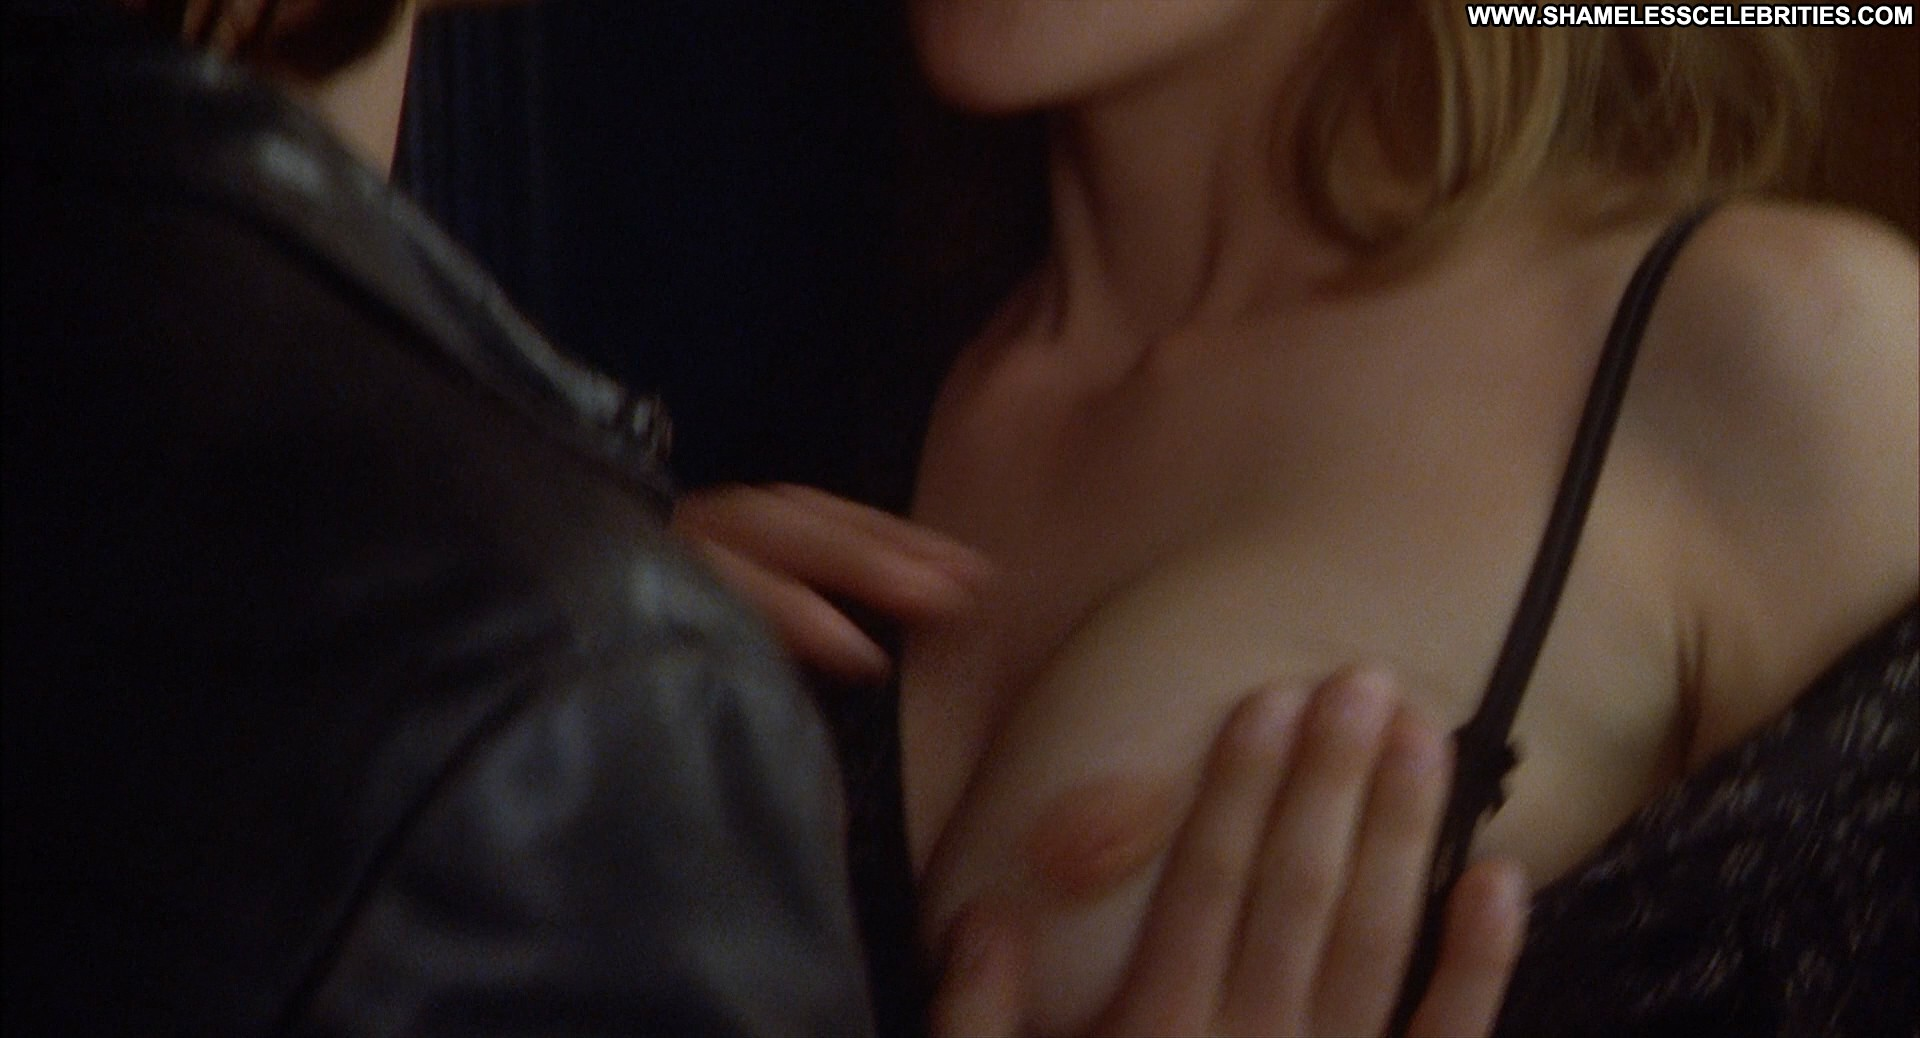 Diane lane nude boobs and nipples in unfaithful movie 6